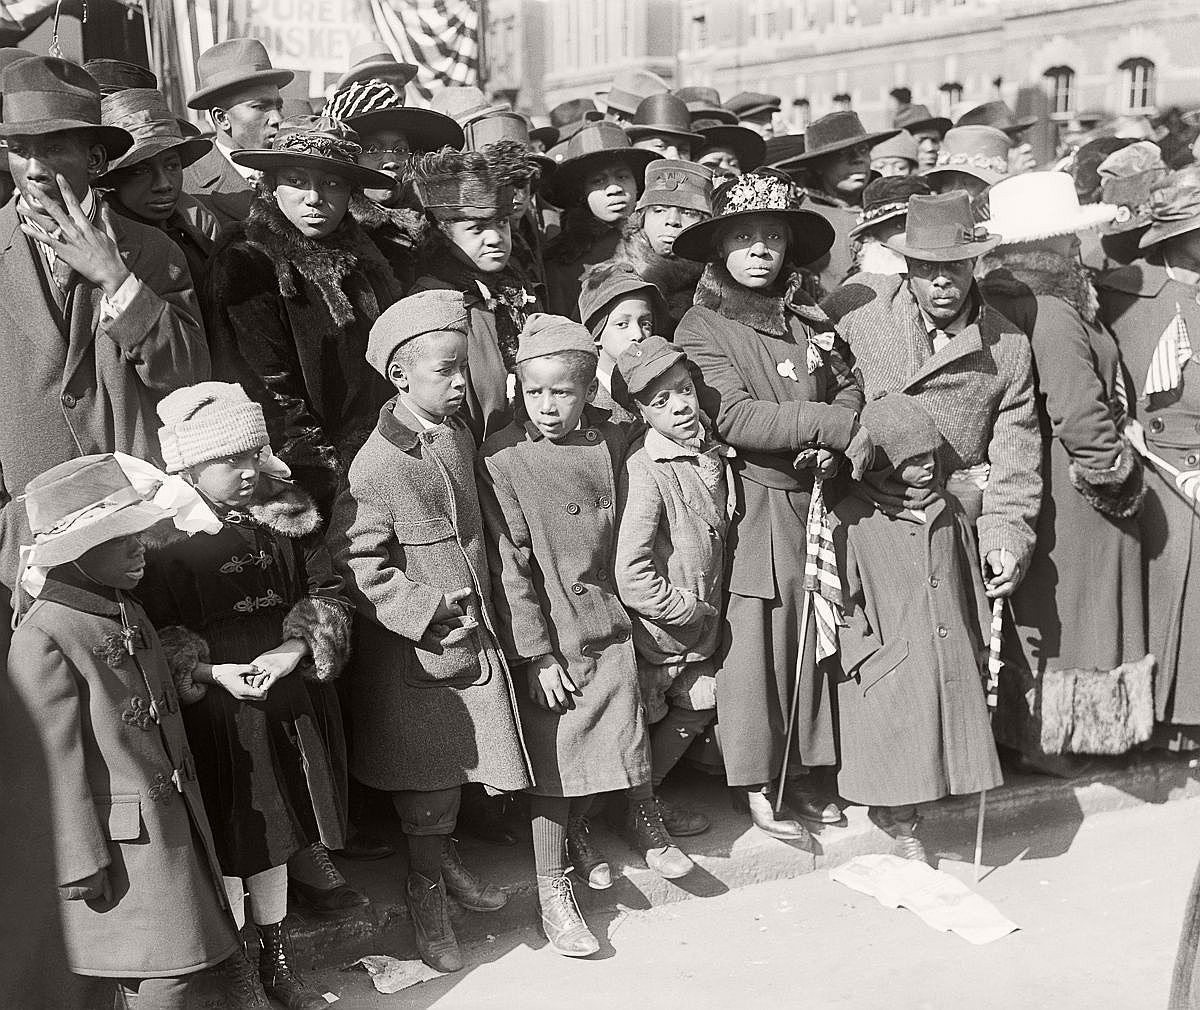 Spectators gather to watch the 369th on their return parade. Feb. 17, 1919. (Bettmann/Corbis)